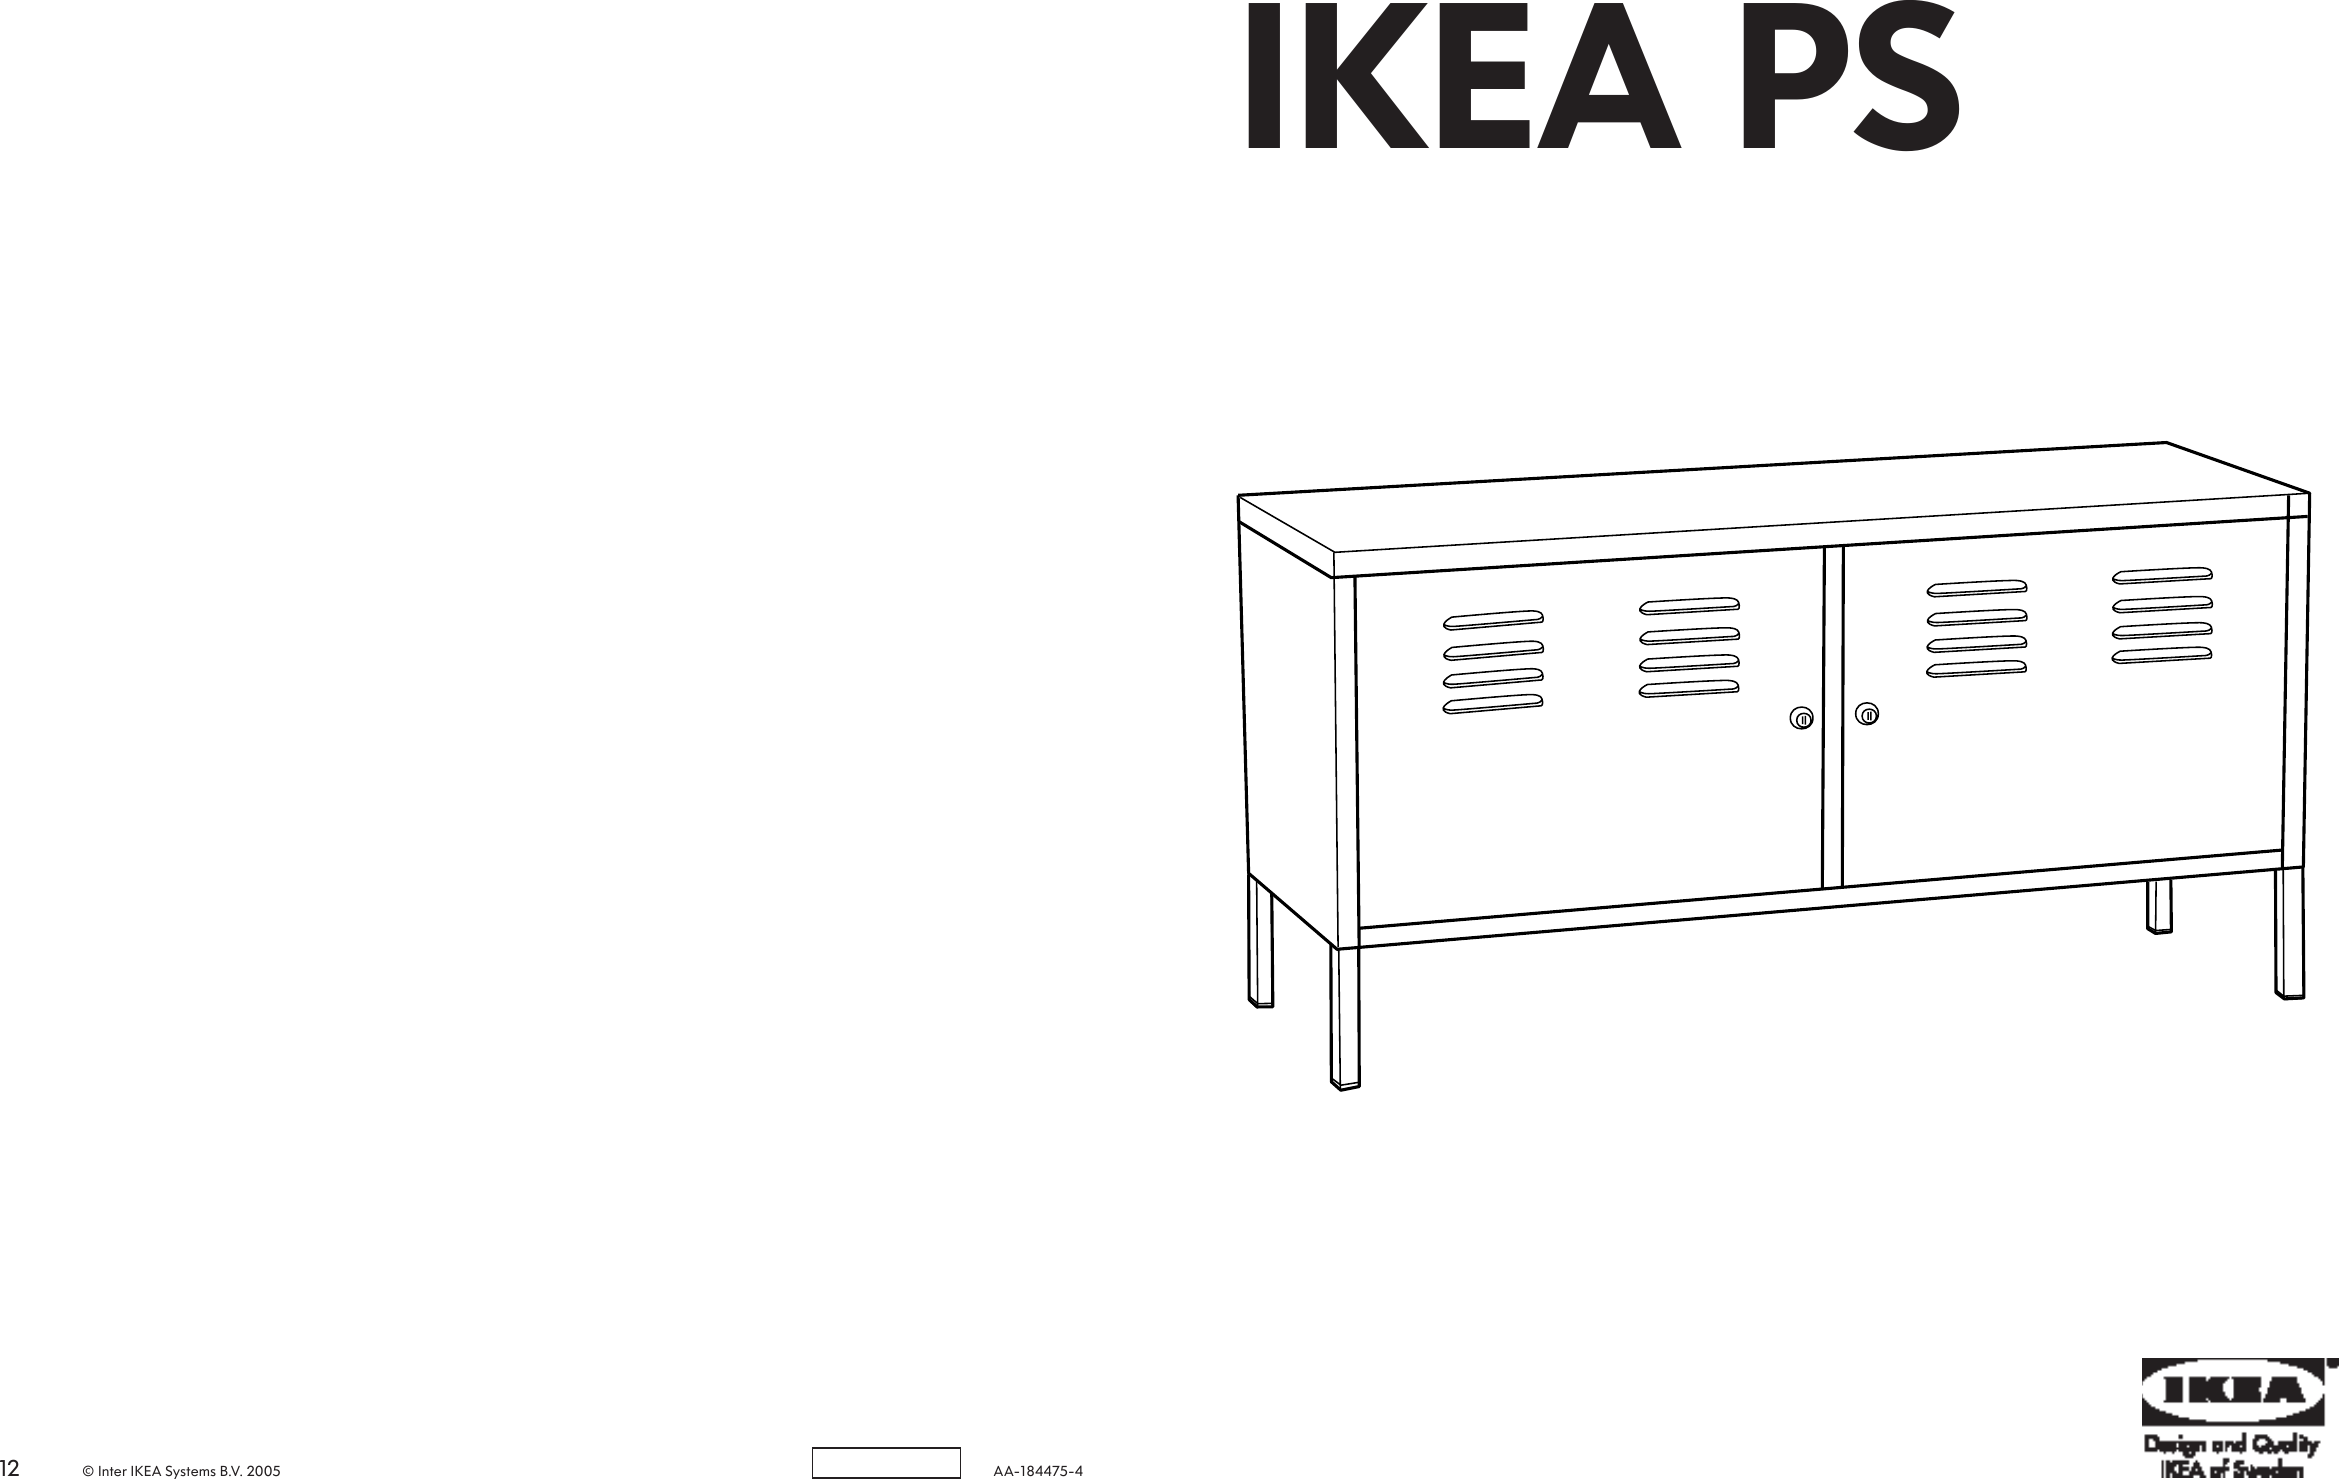 Ikea Ps Cabinet 46 7 8x24 3 4 Assembly Instruction